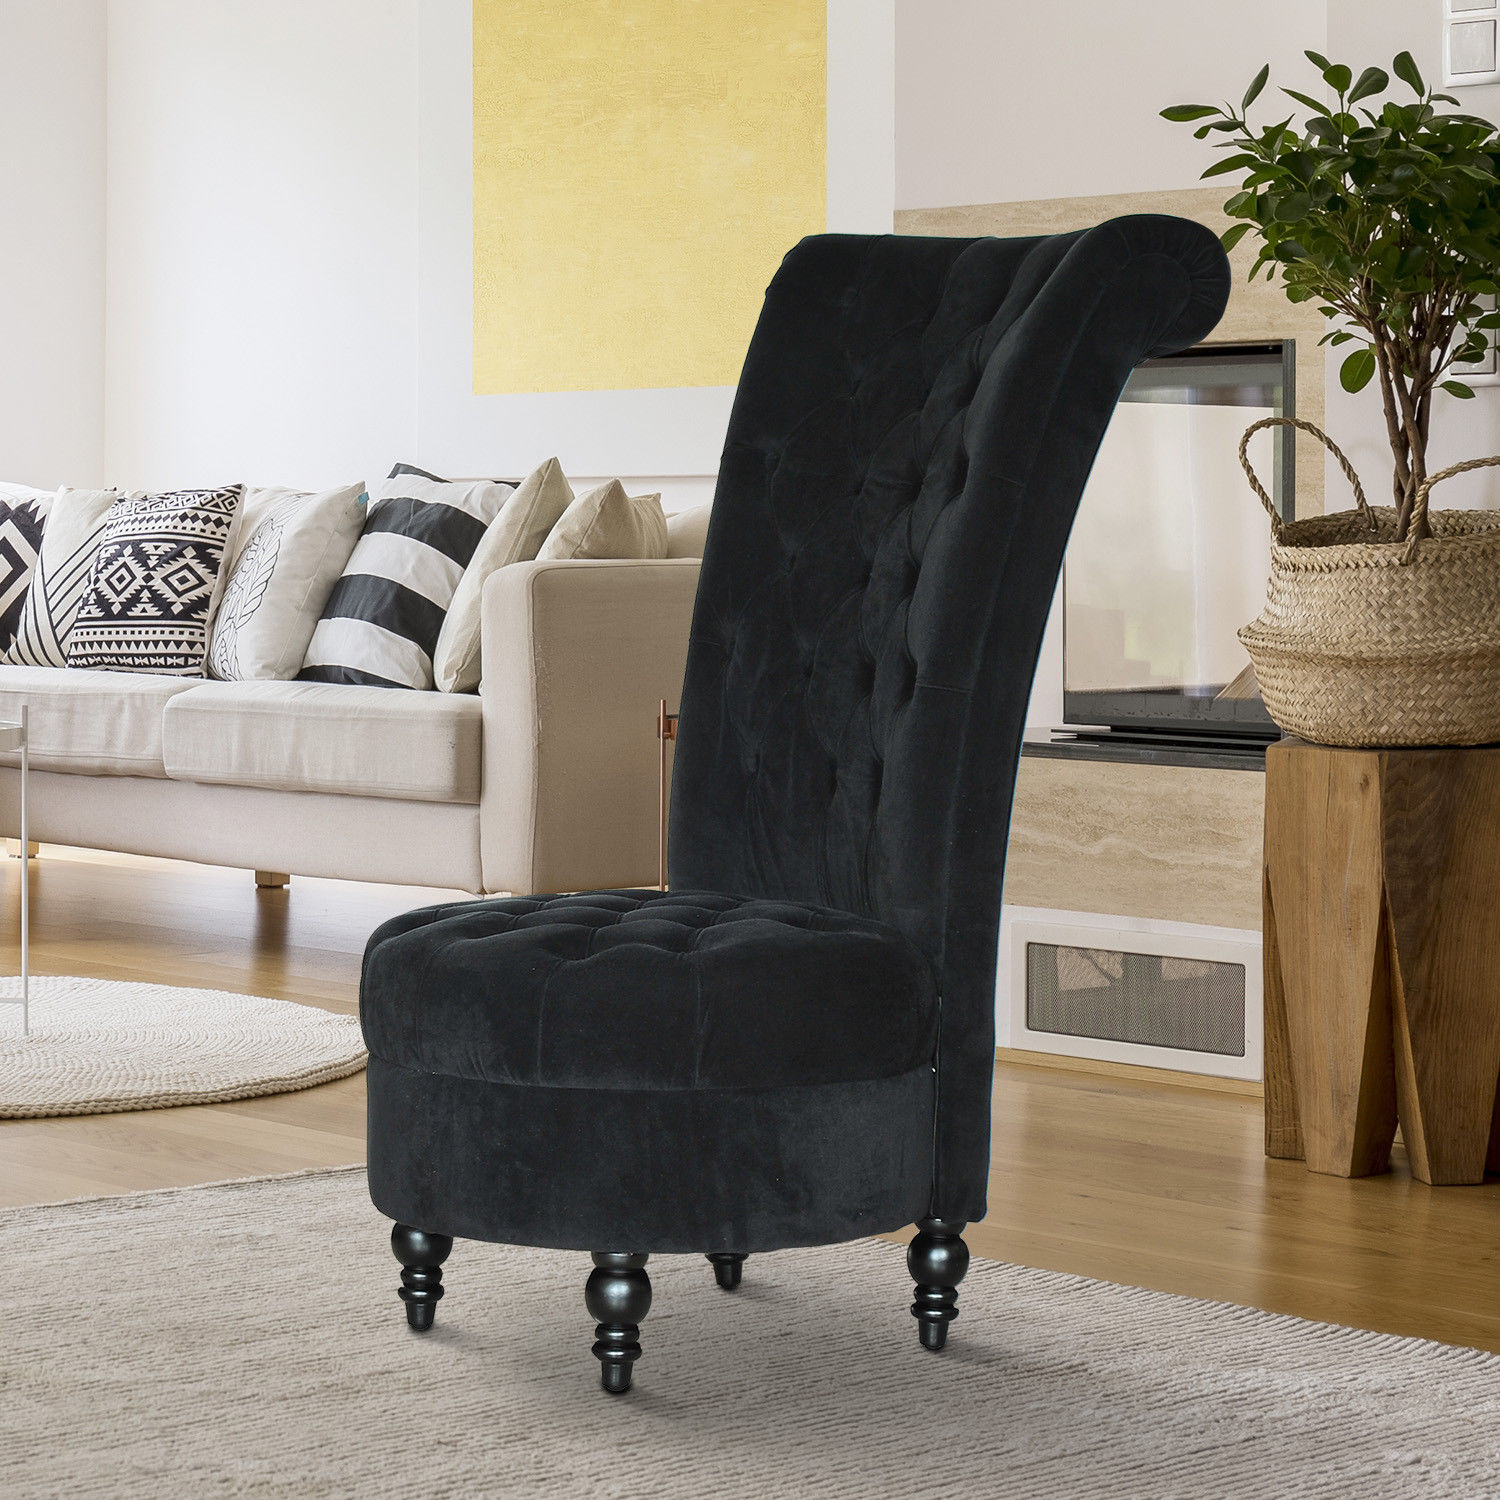 Details about homcom 45 tufted high back velvet accent chair living room soft couch black